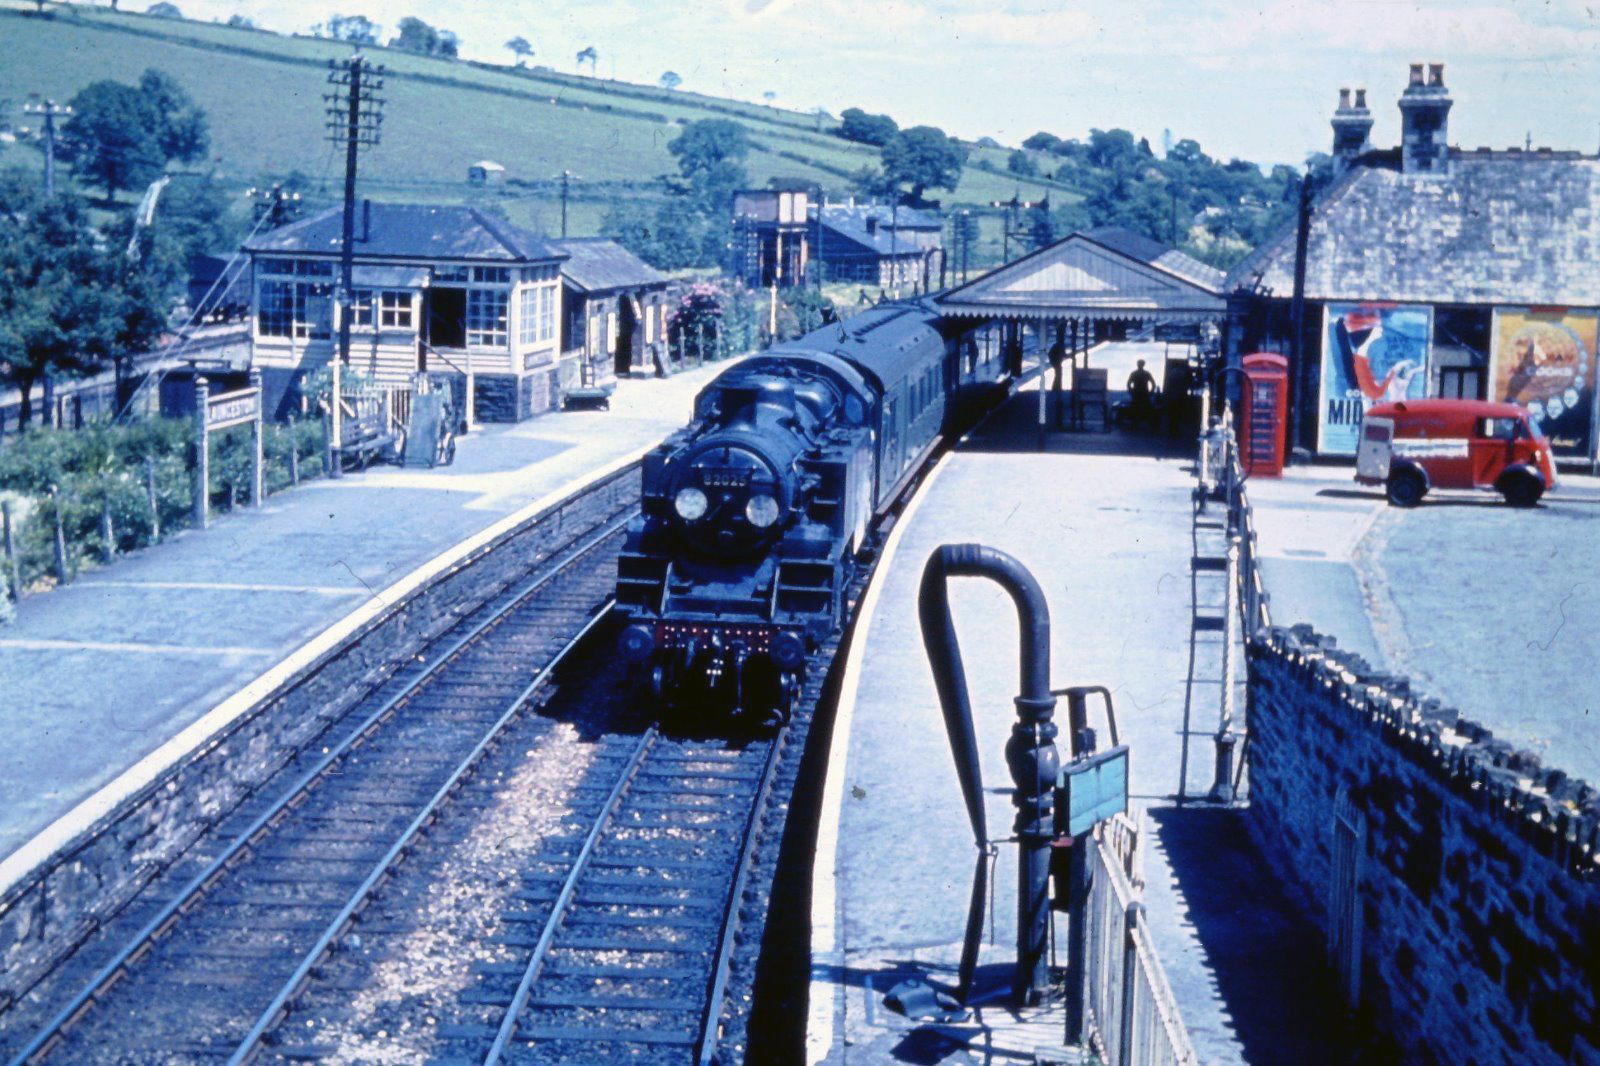 BRS1425 - 82025 at Launceston in 1963